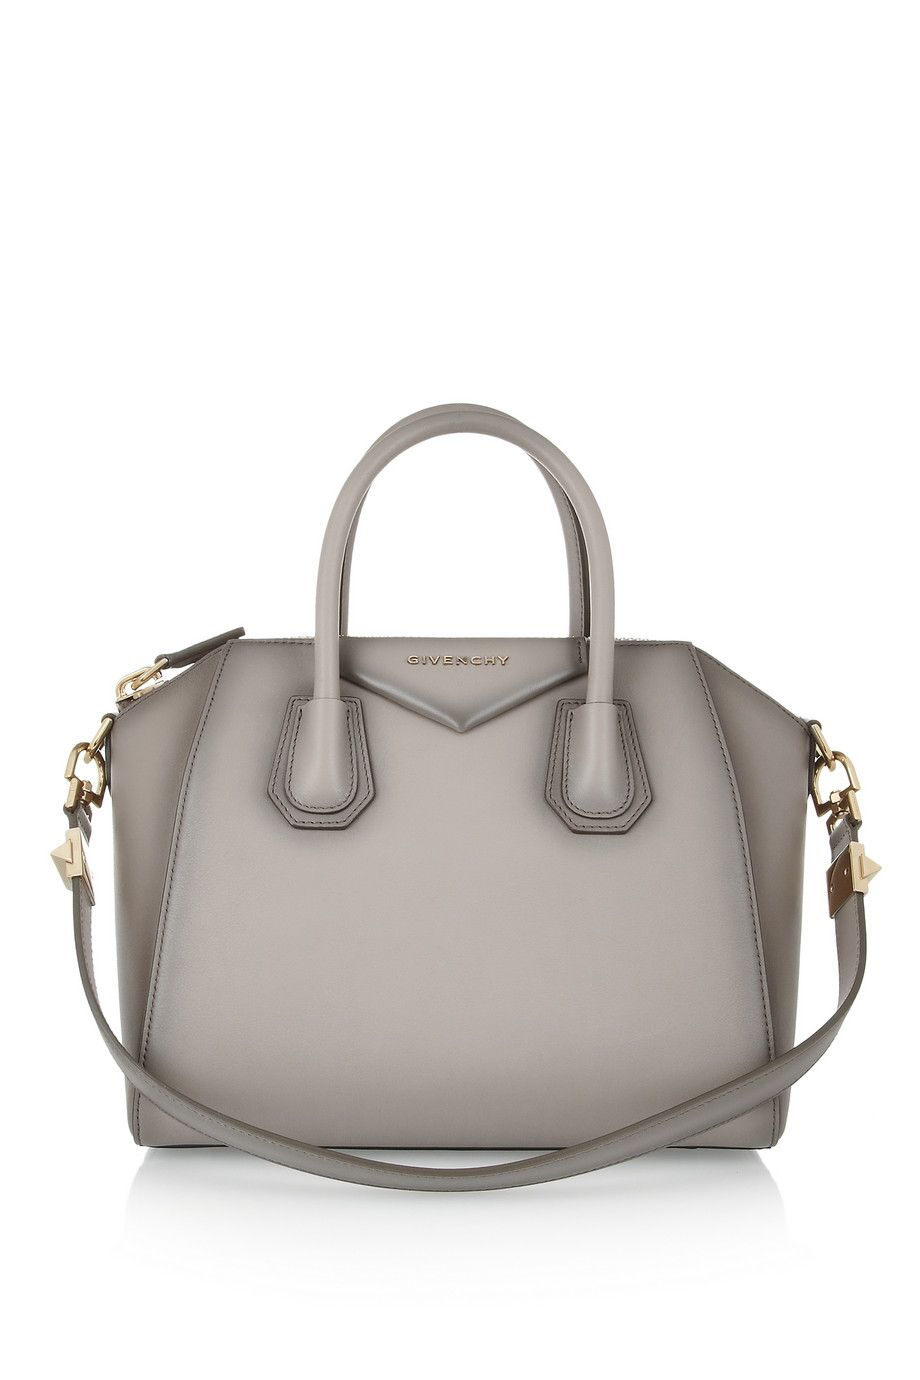 Givenchy  7b07d35ee2904